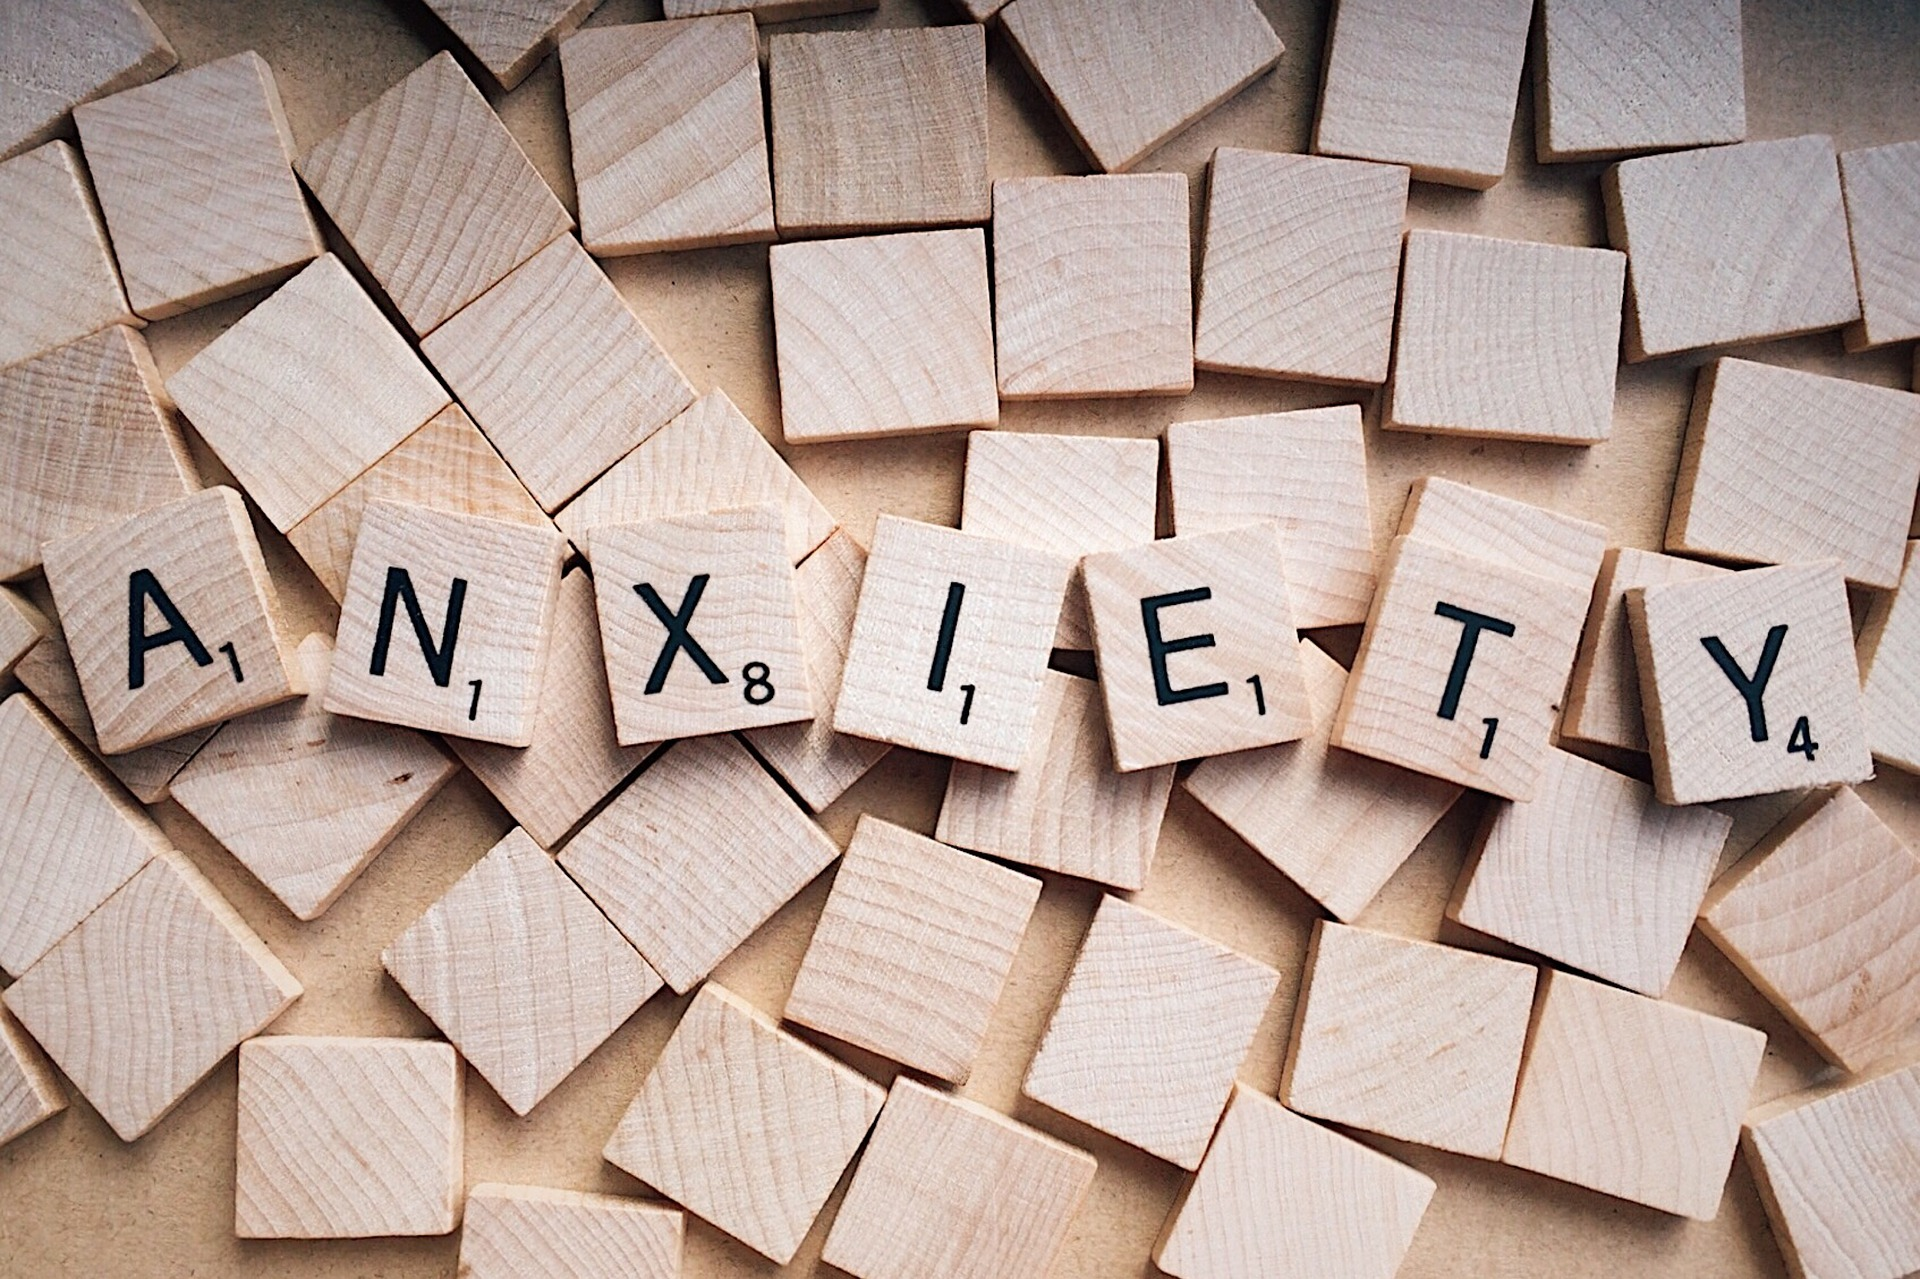 Anxiety written in wooden scrabble letters